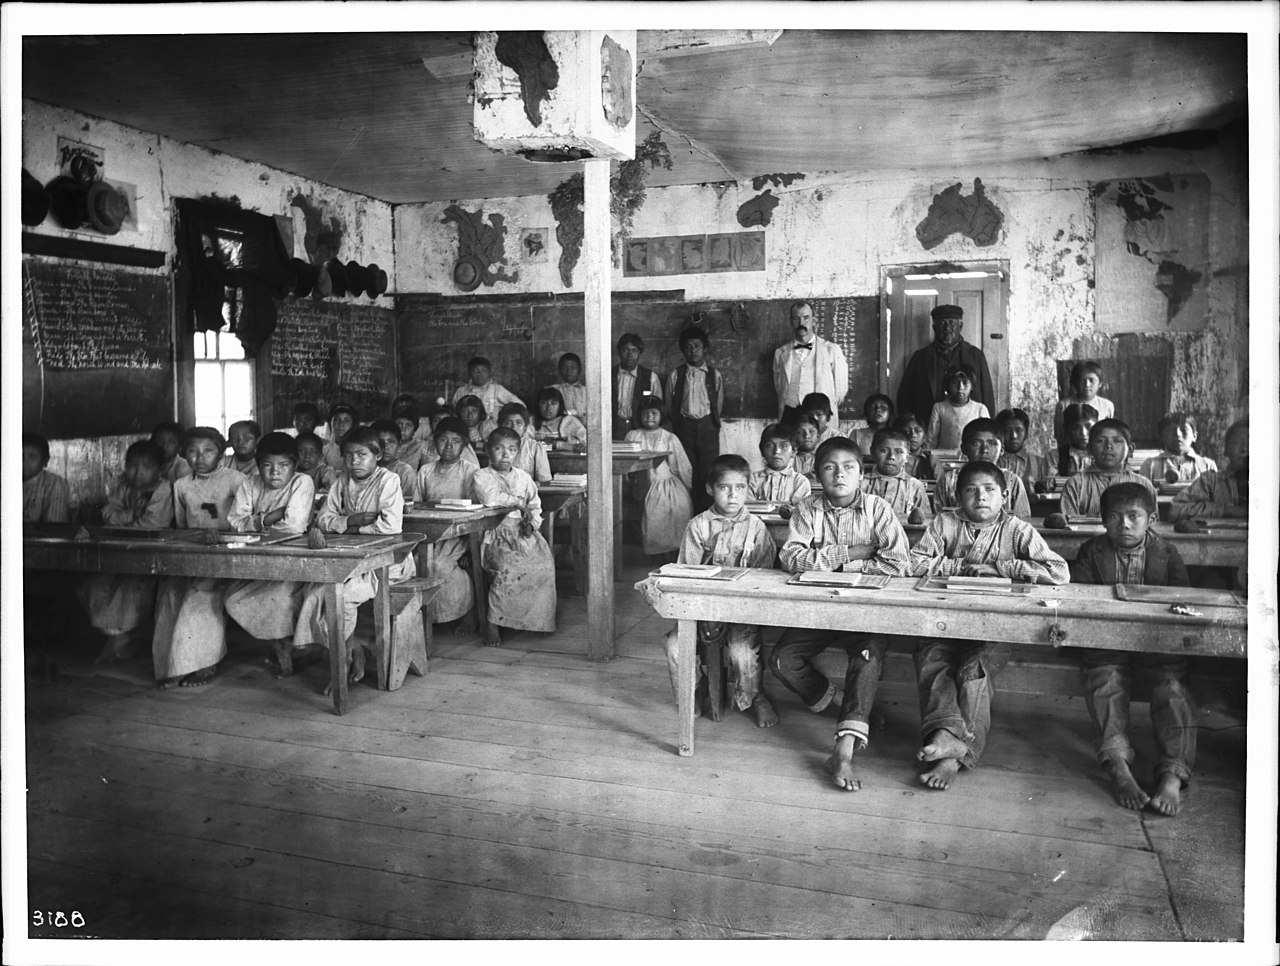 a history of the phoenix indian school For high school he attended the haskell indian school in lawrence, kansas tribal languages were allowed there, but the education was still very strict and militaristic.